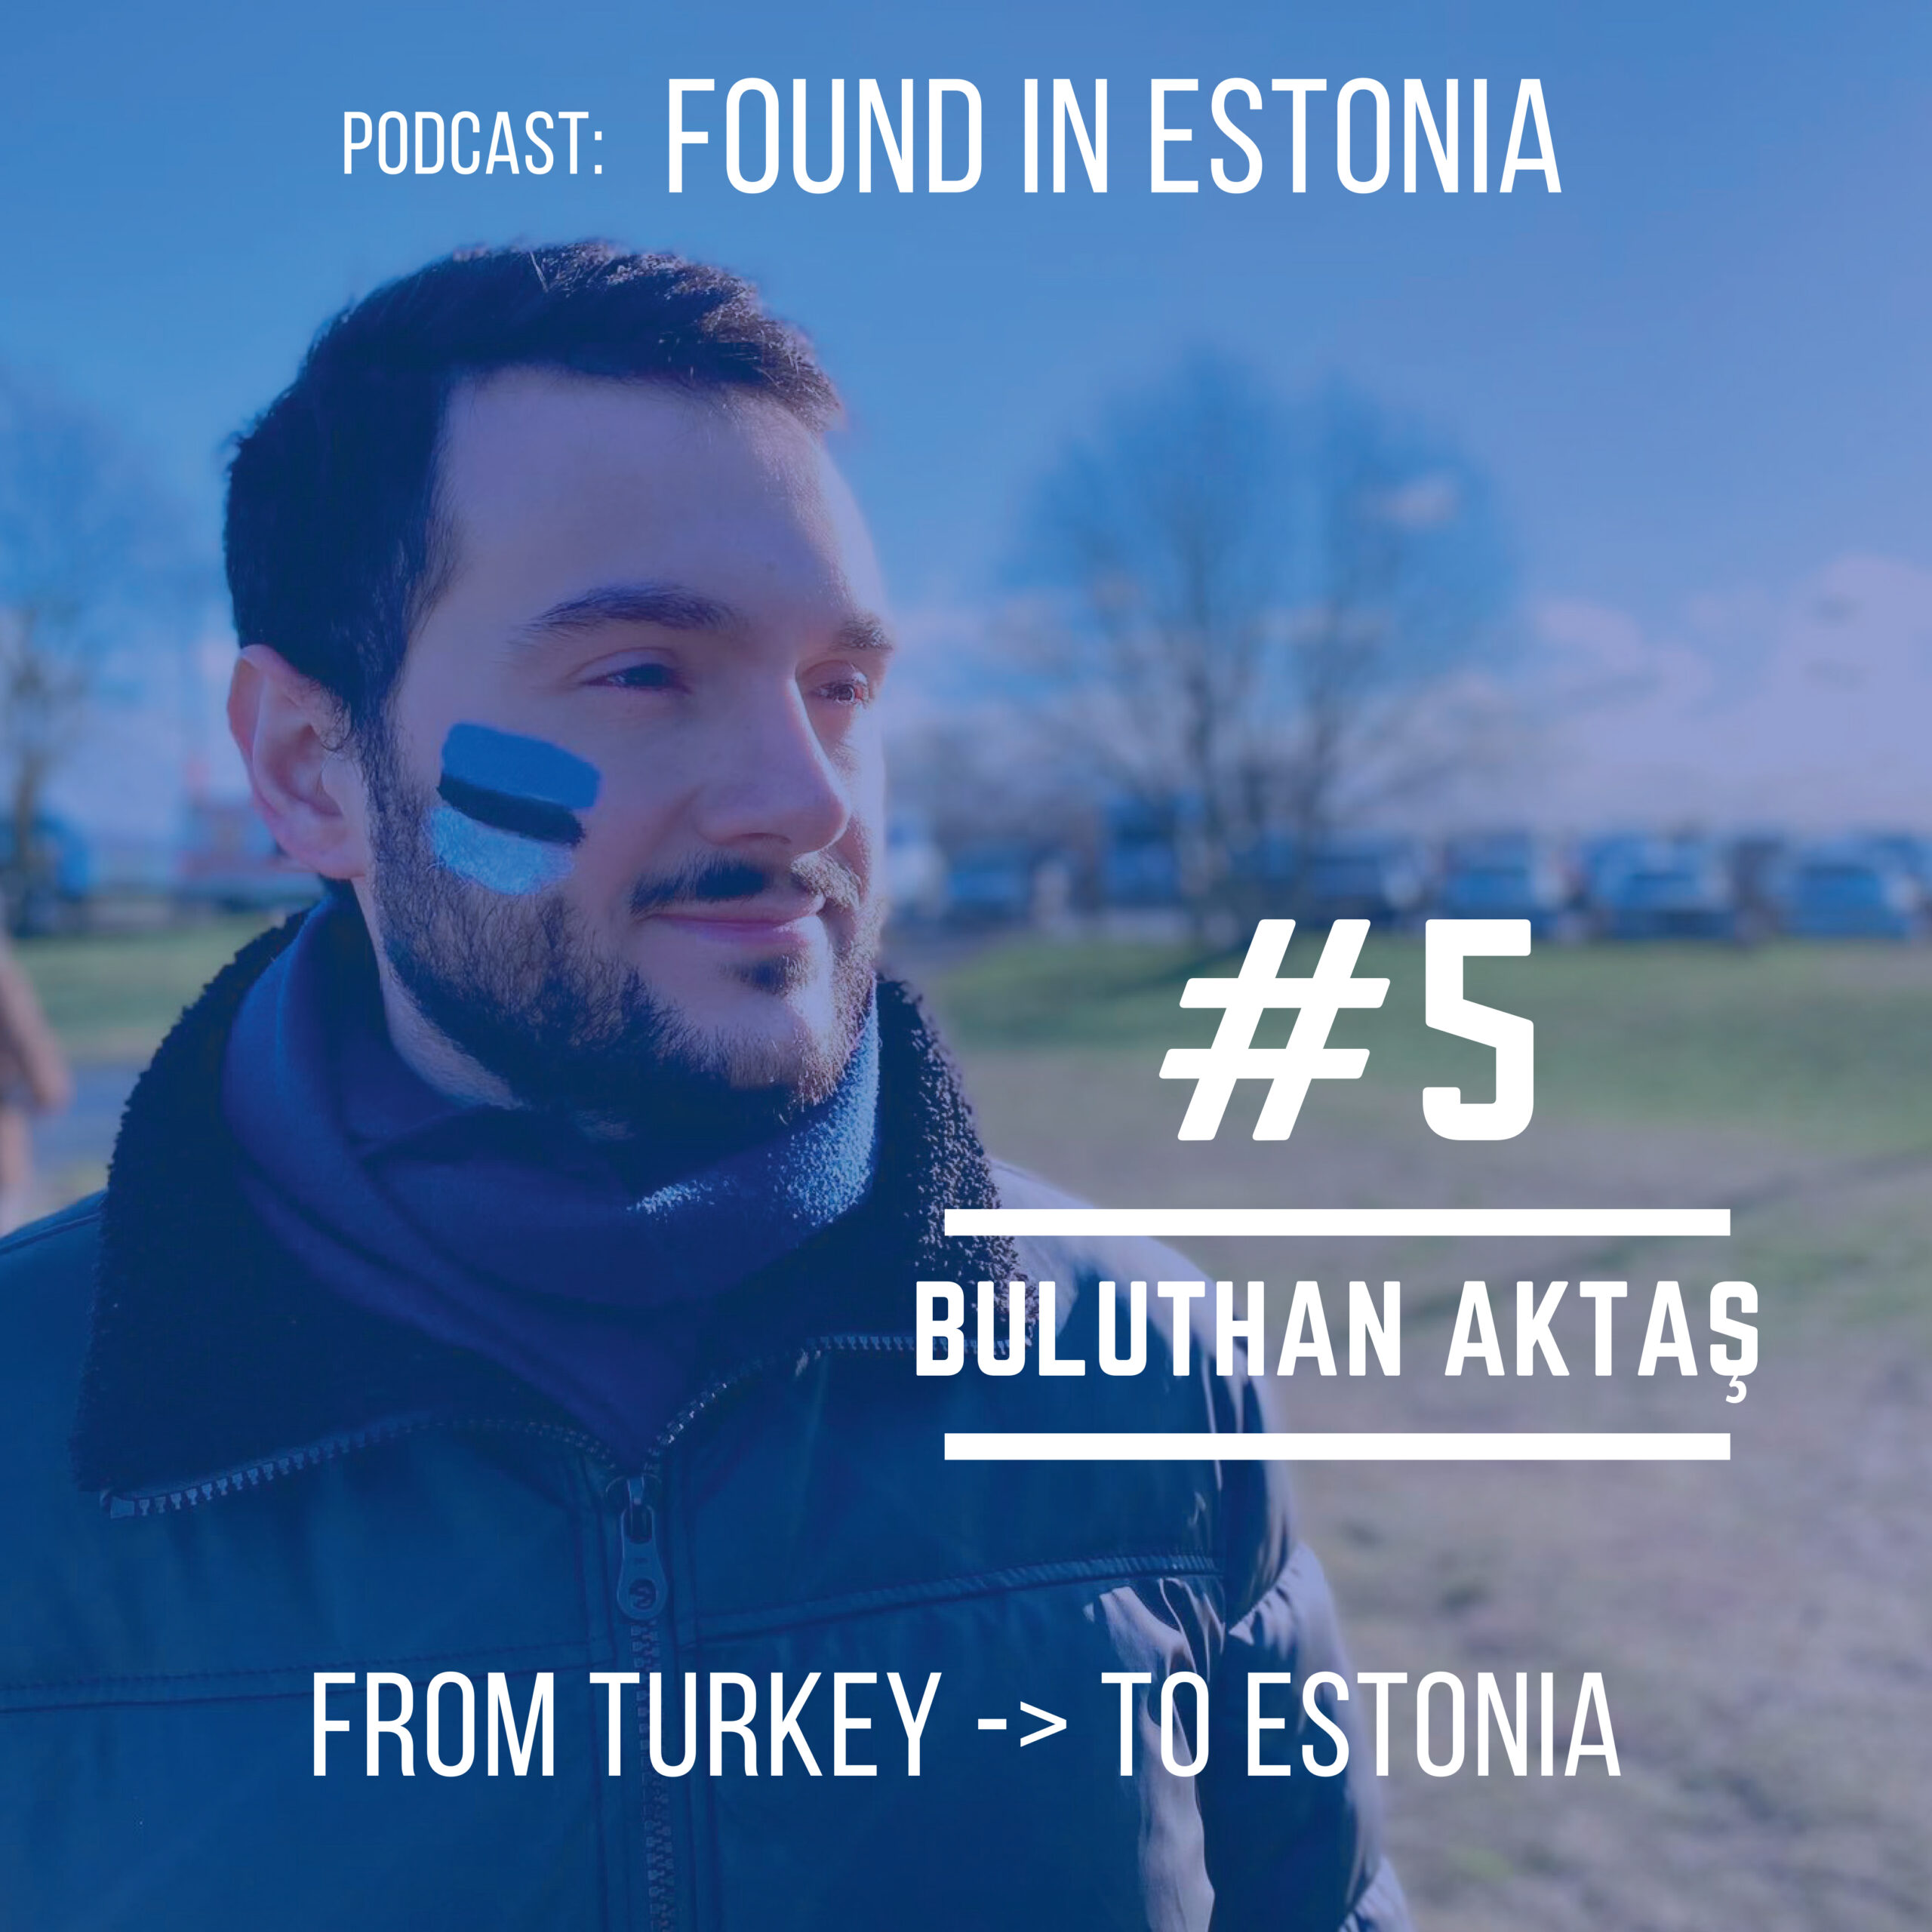 #5 Buluthan Aktaş - From Turkey to Estonia